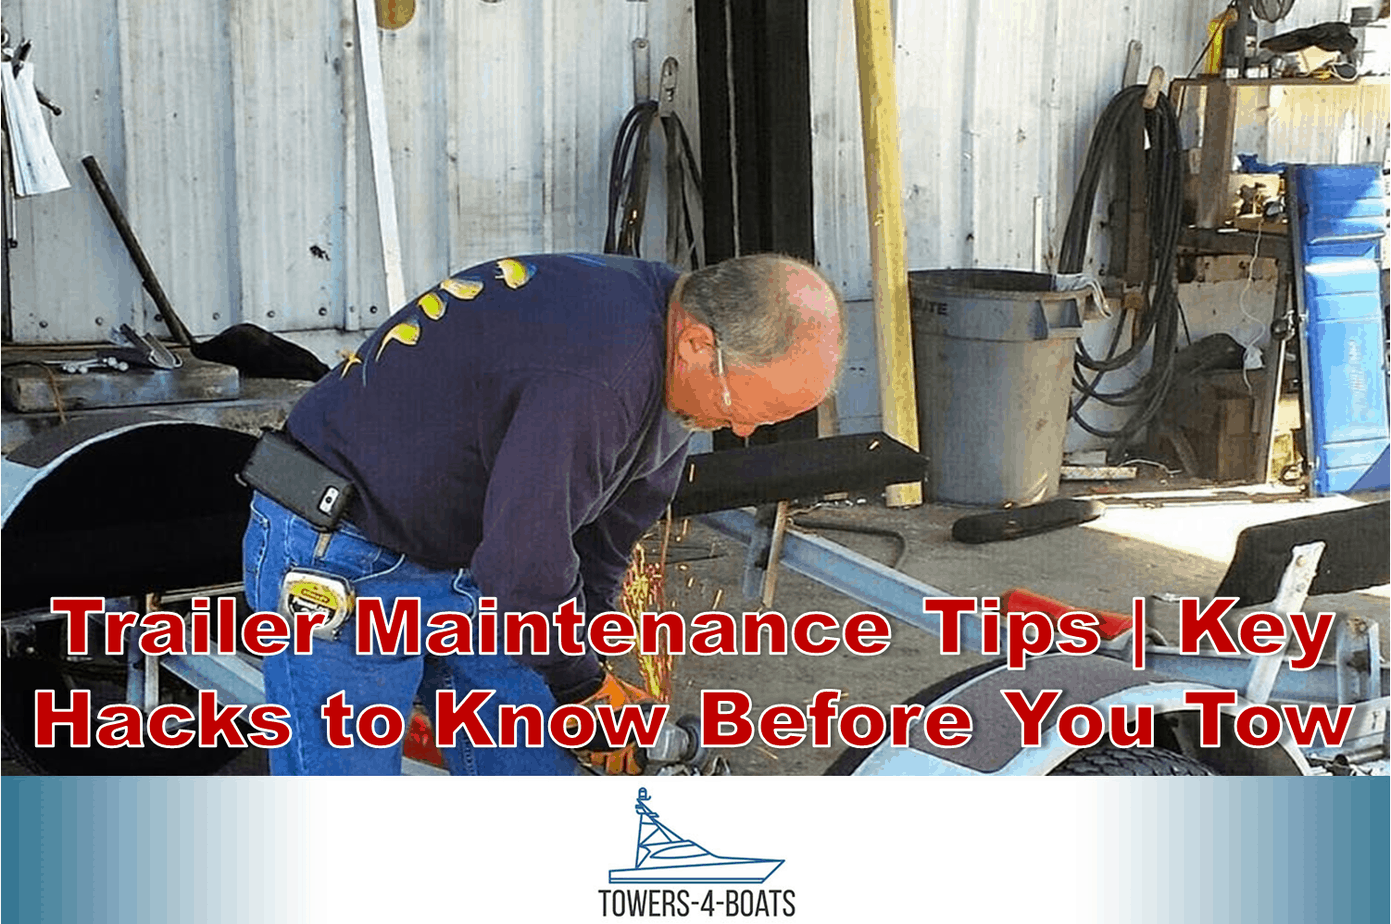 Trailer Maintenance Tips   Key Hacks to Know Before You Tow